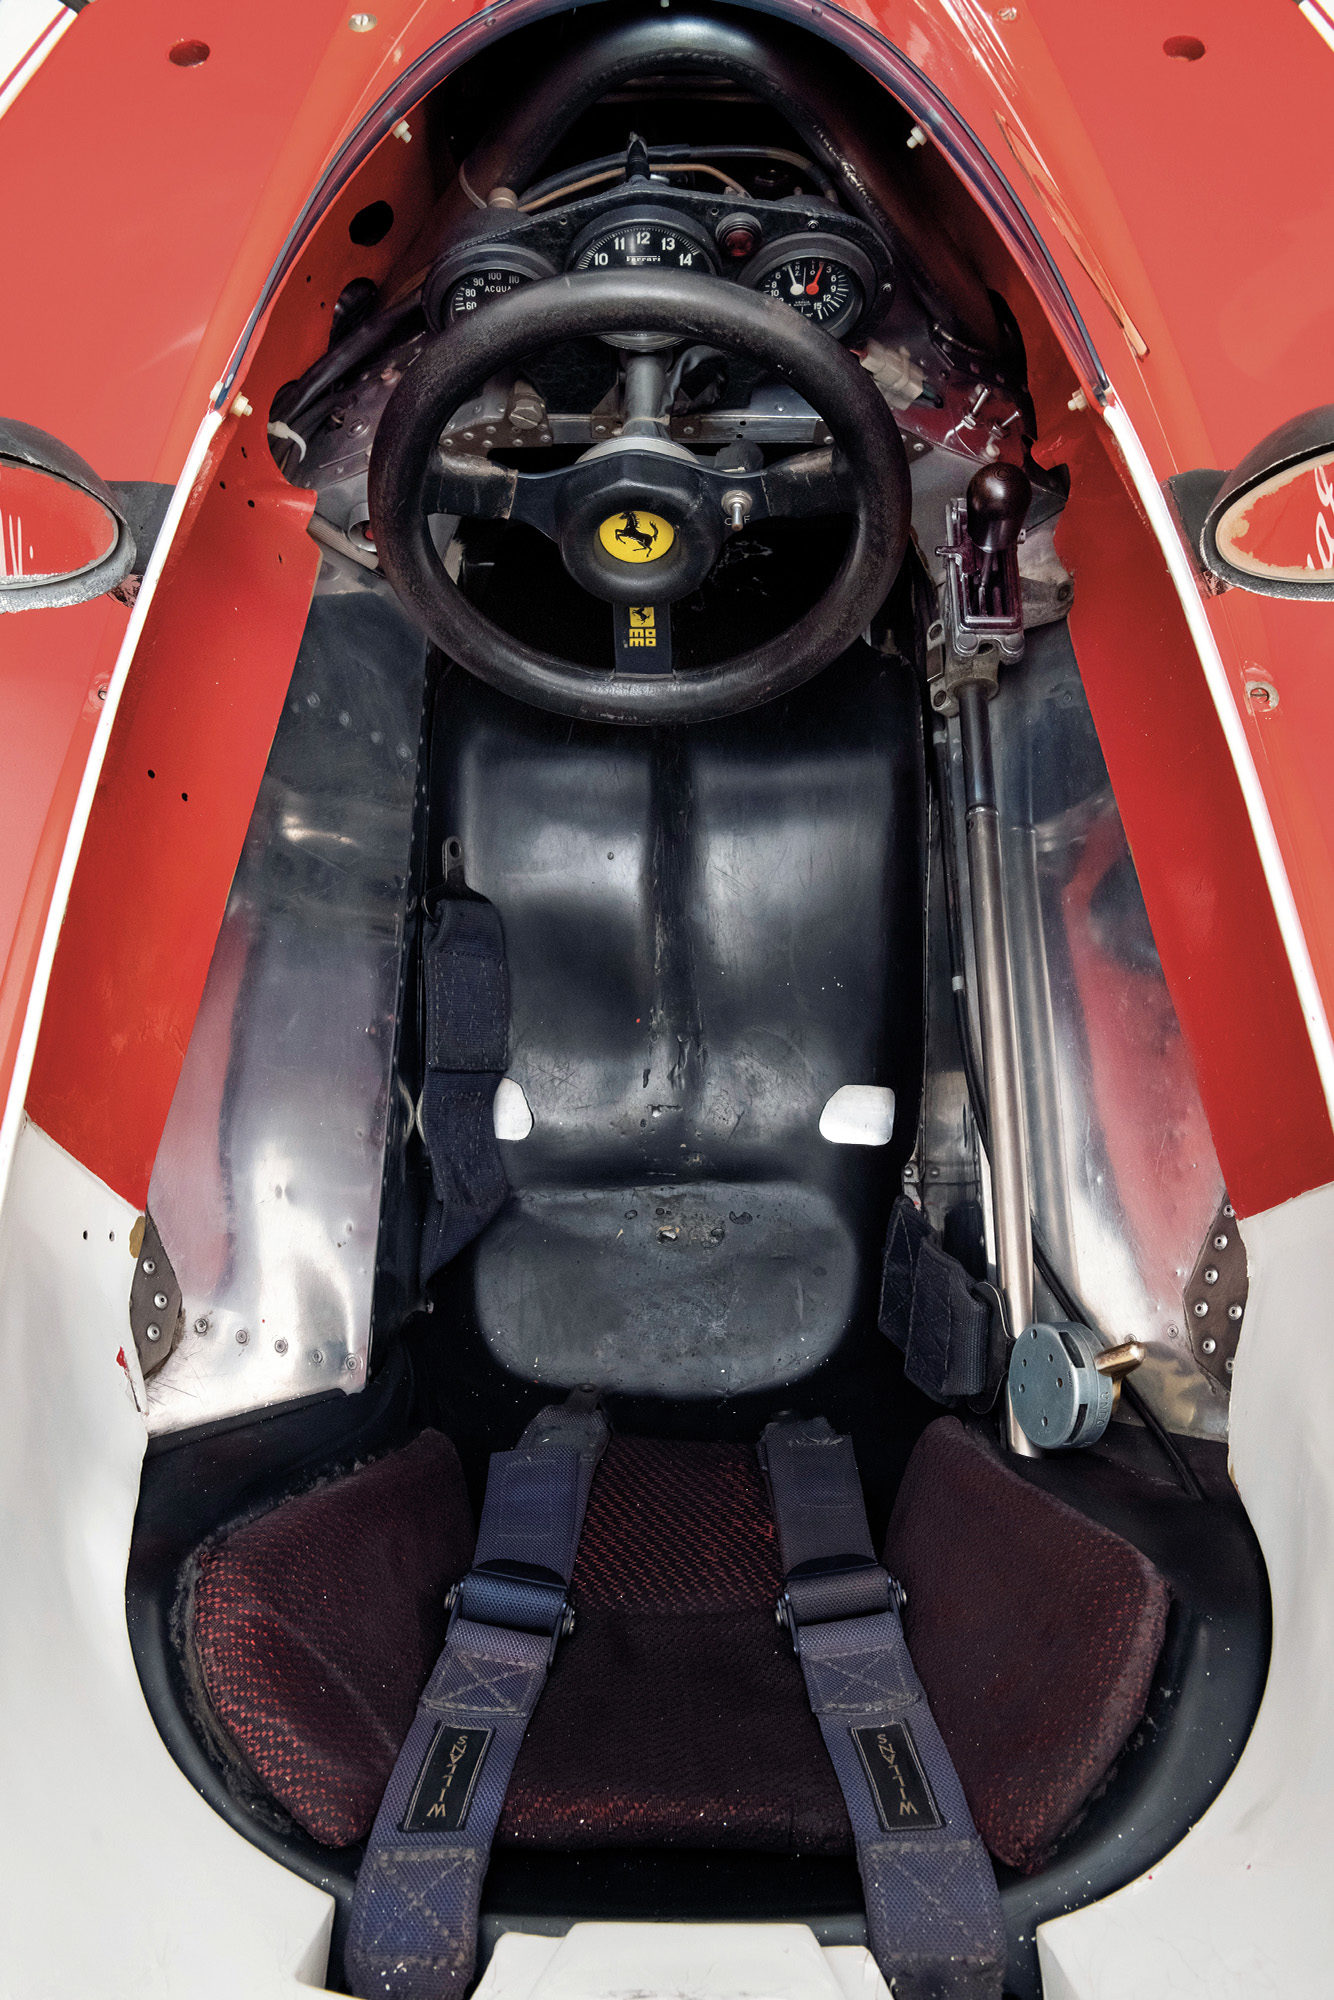 Overhead view of the cockpit and seat of the Niki LAuda 1975 Ferrari 312T